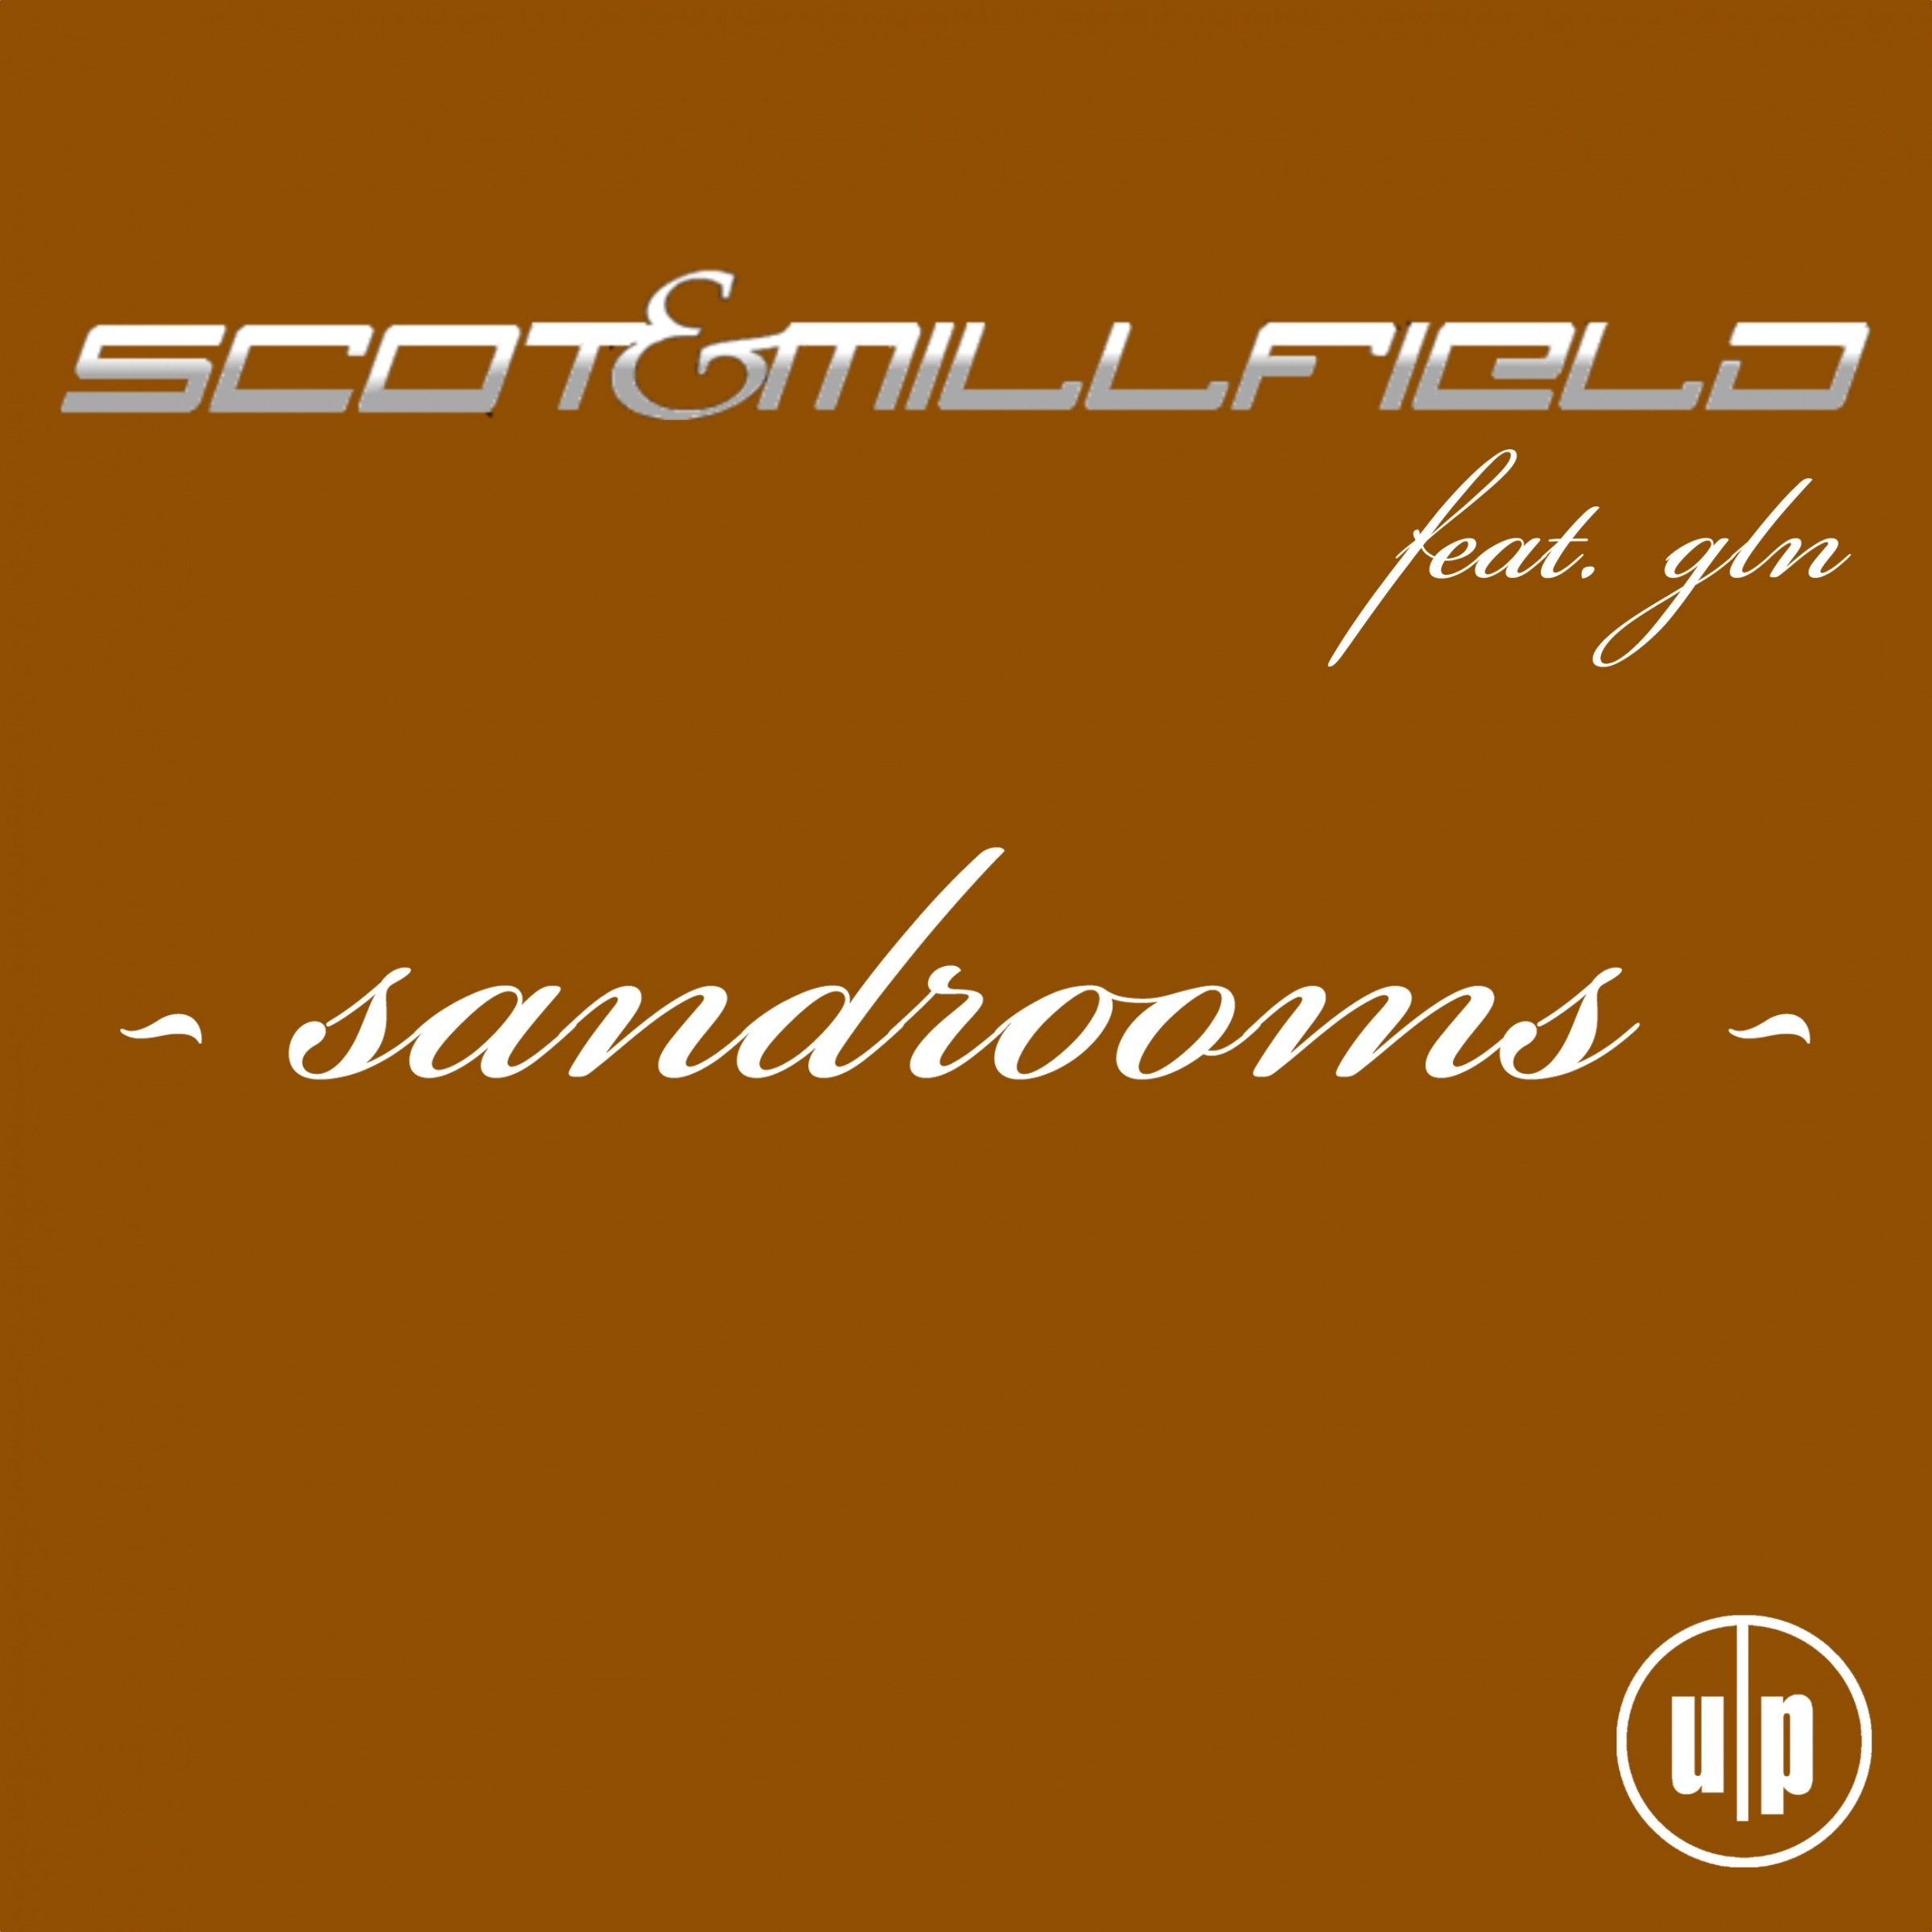 Sandrooms (feat. GLN)